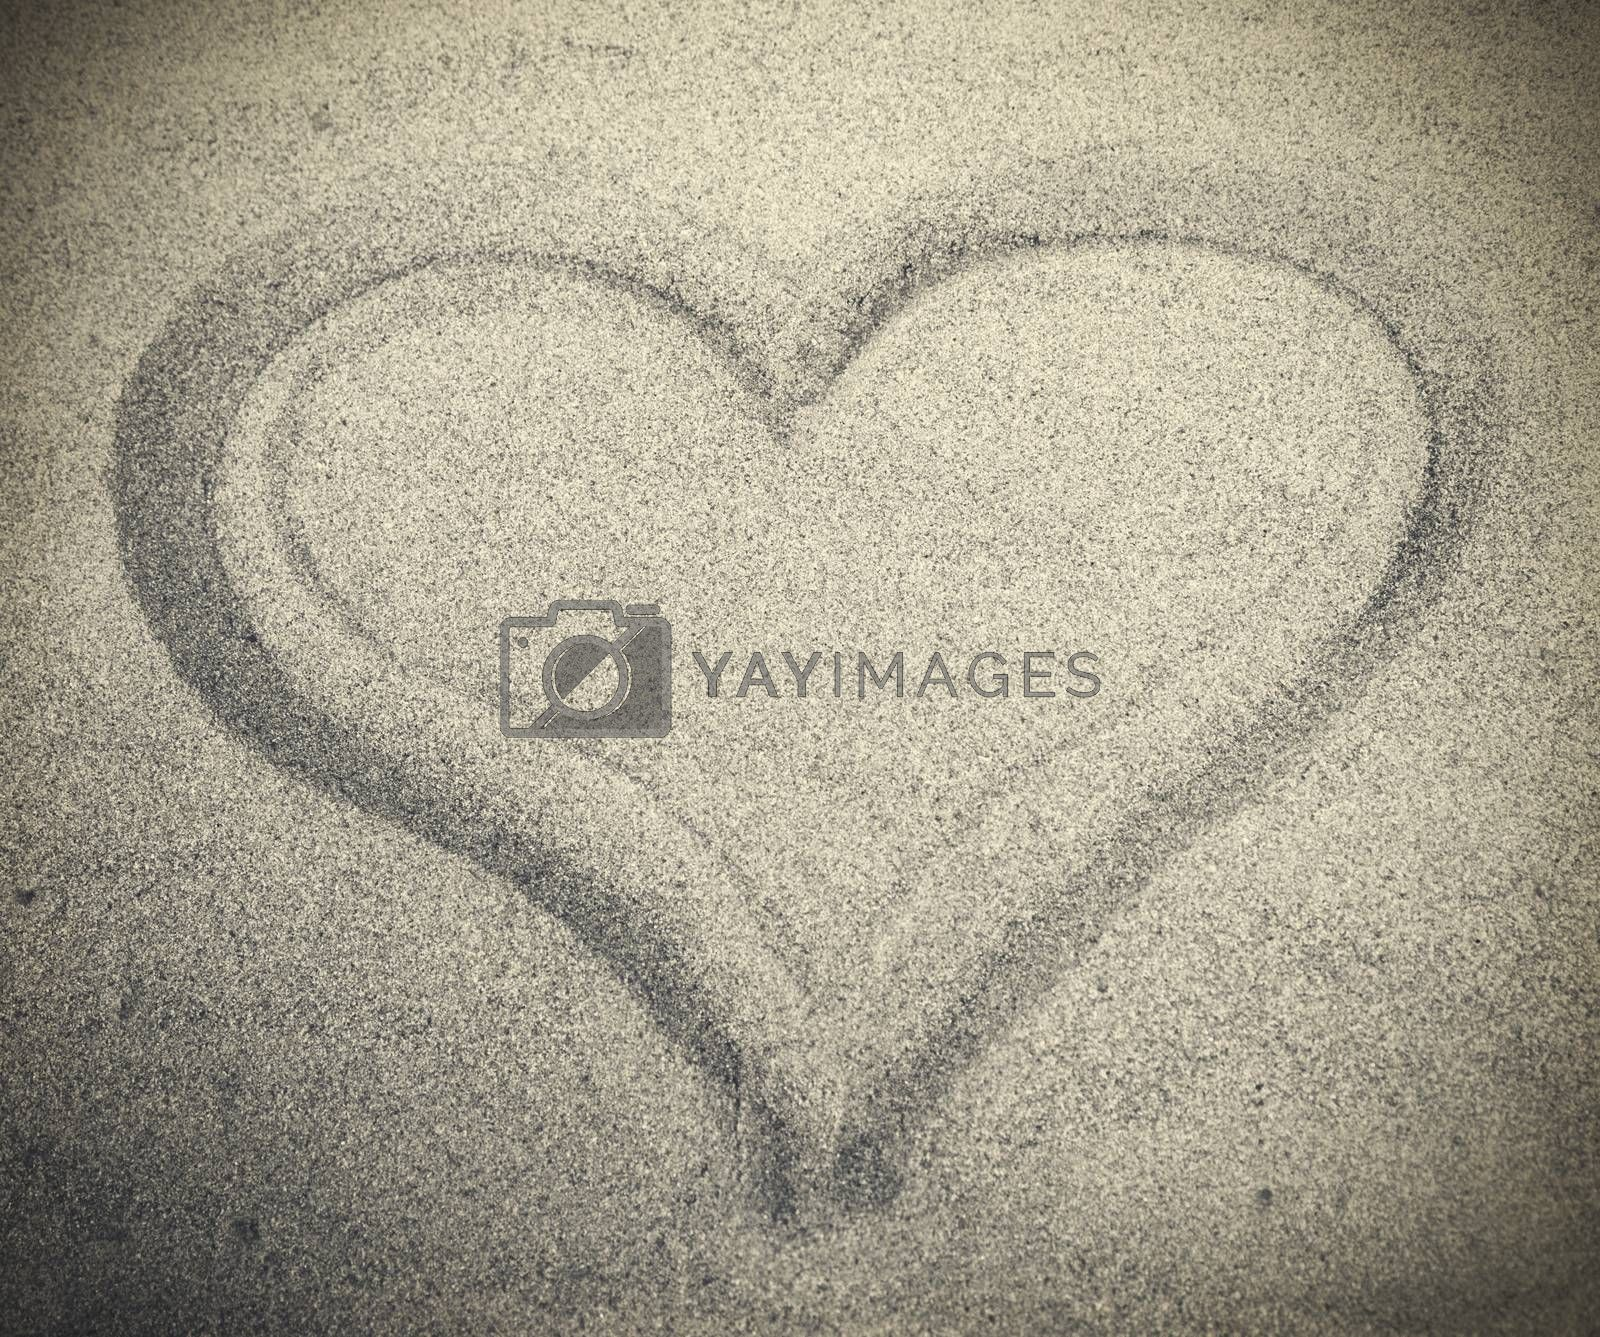 Picture of heart drew on white sand